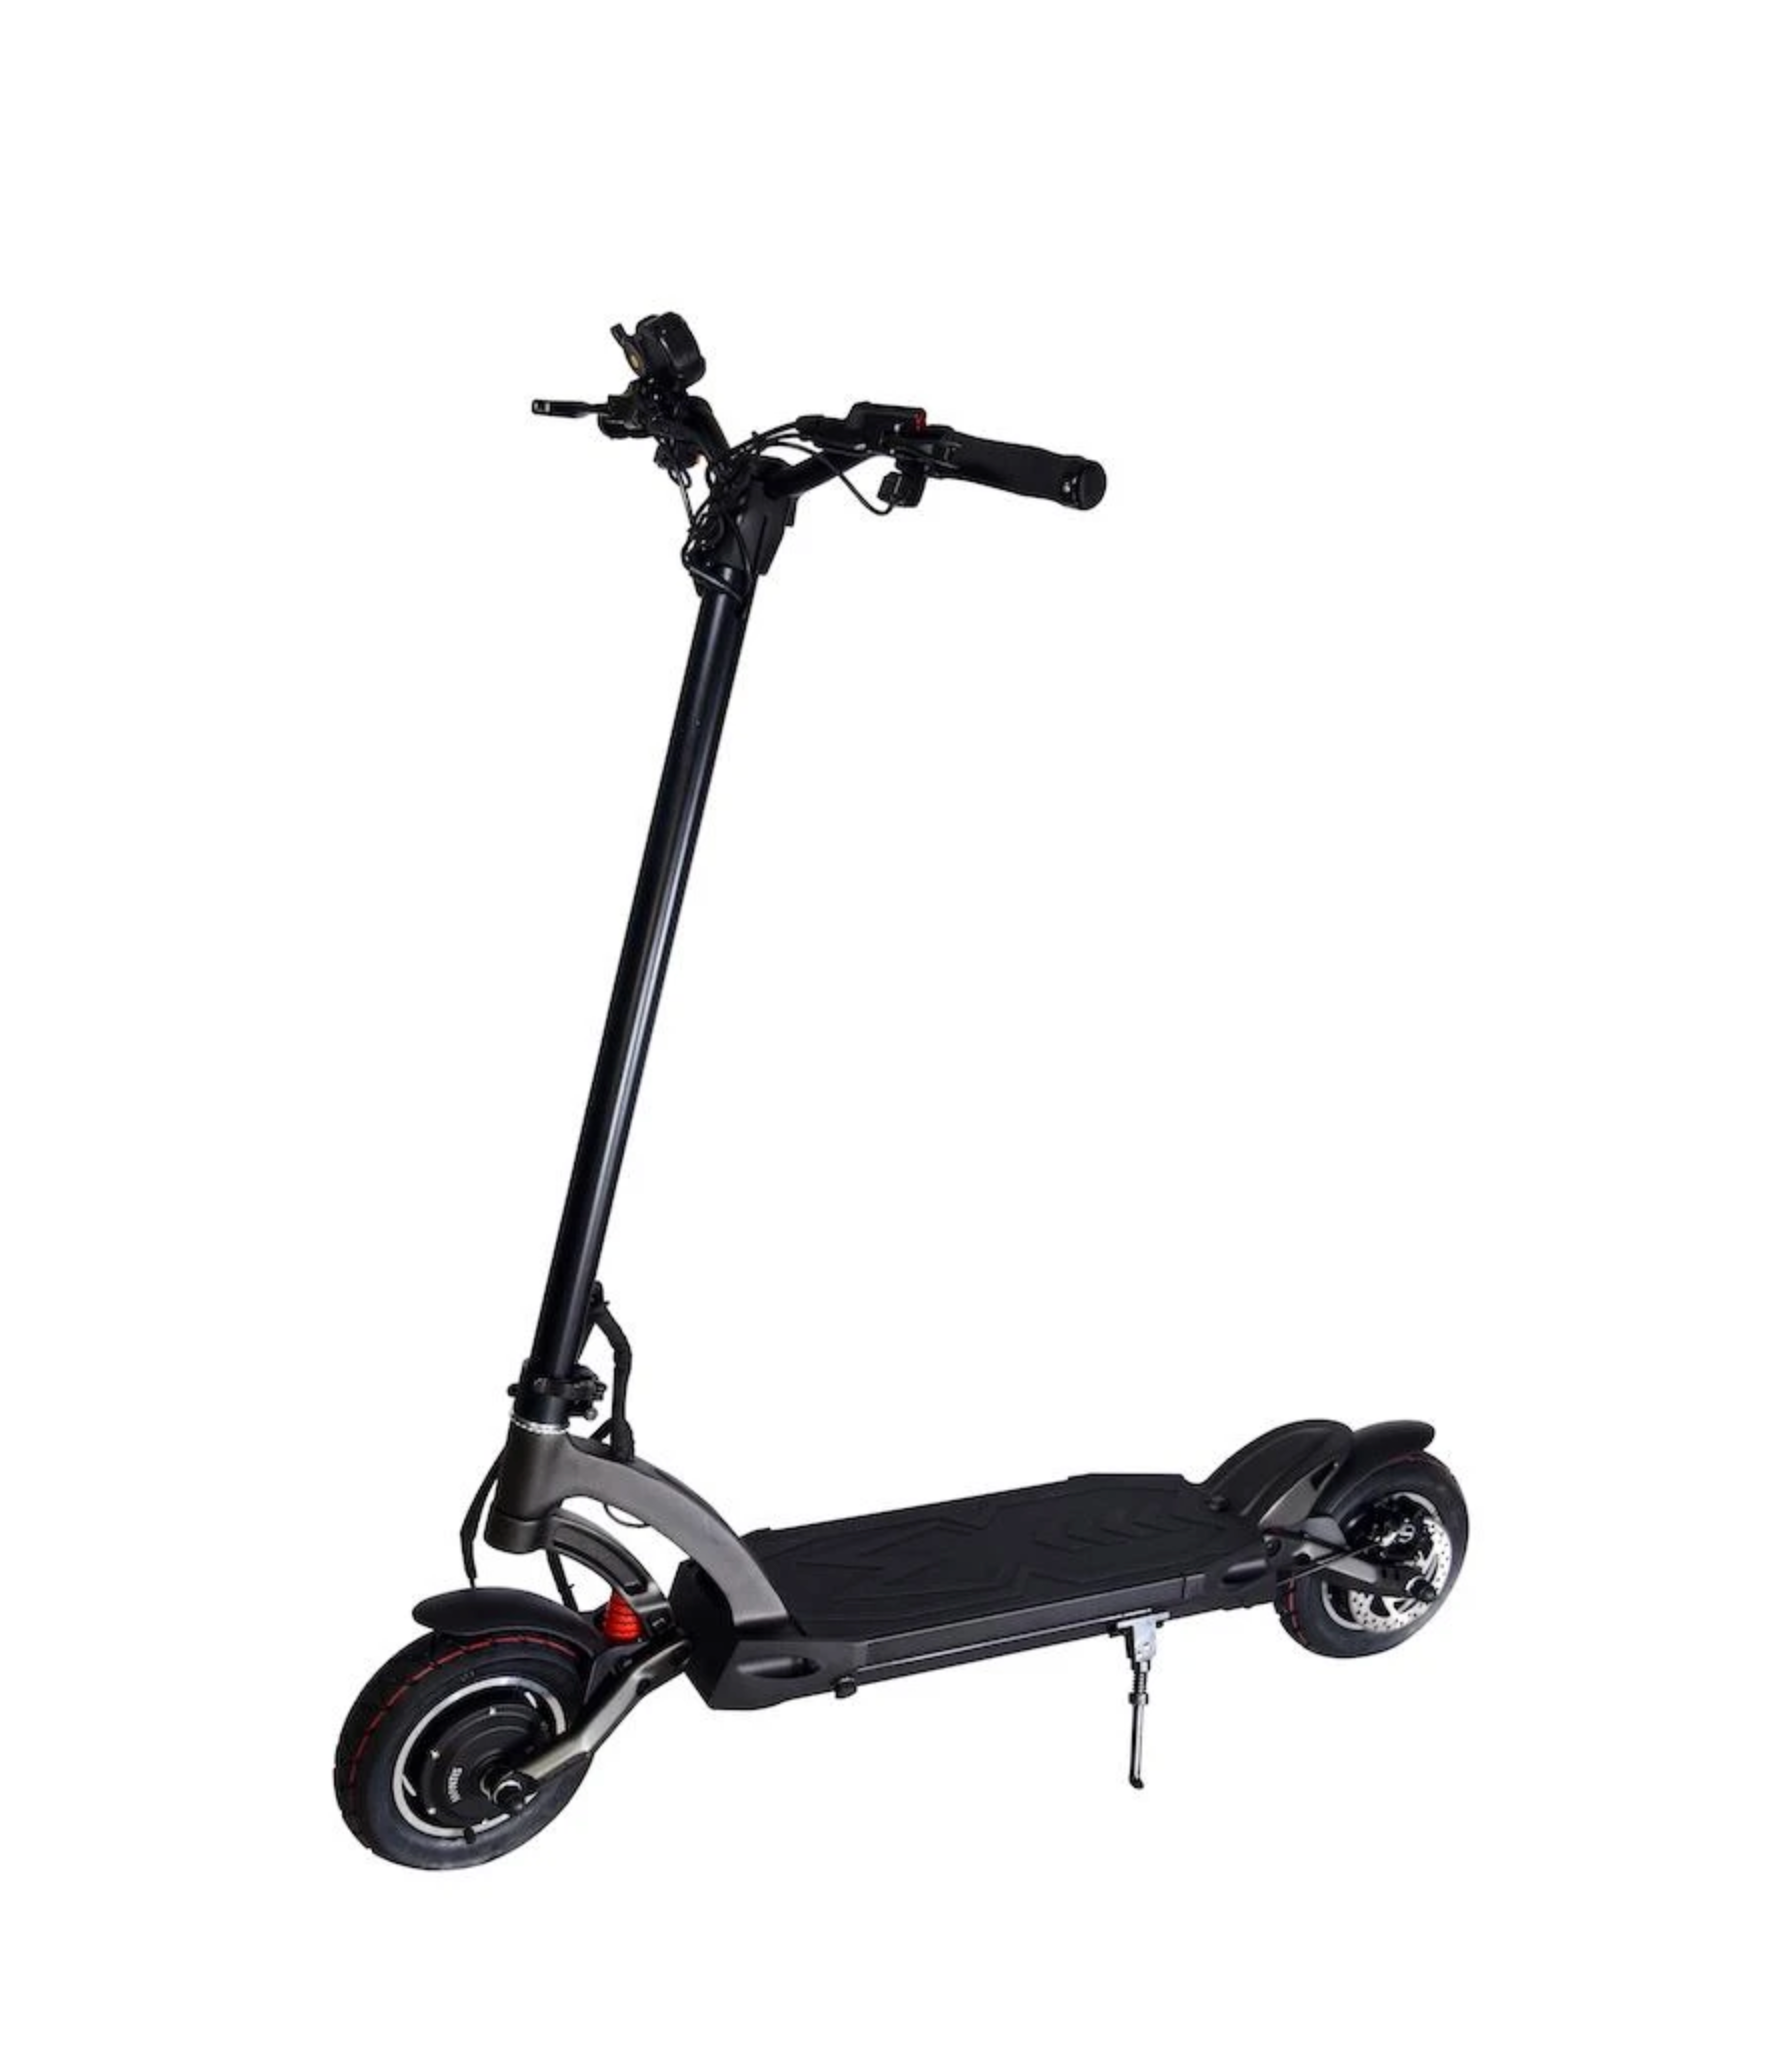 Kaabo Mantis Pro Electric Scooter Side Image